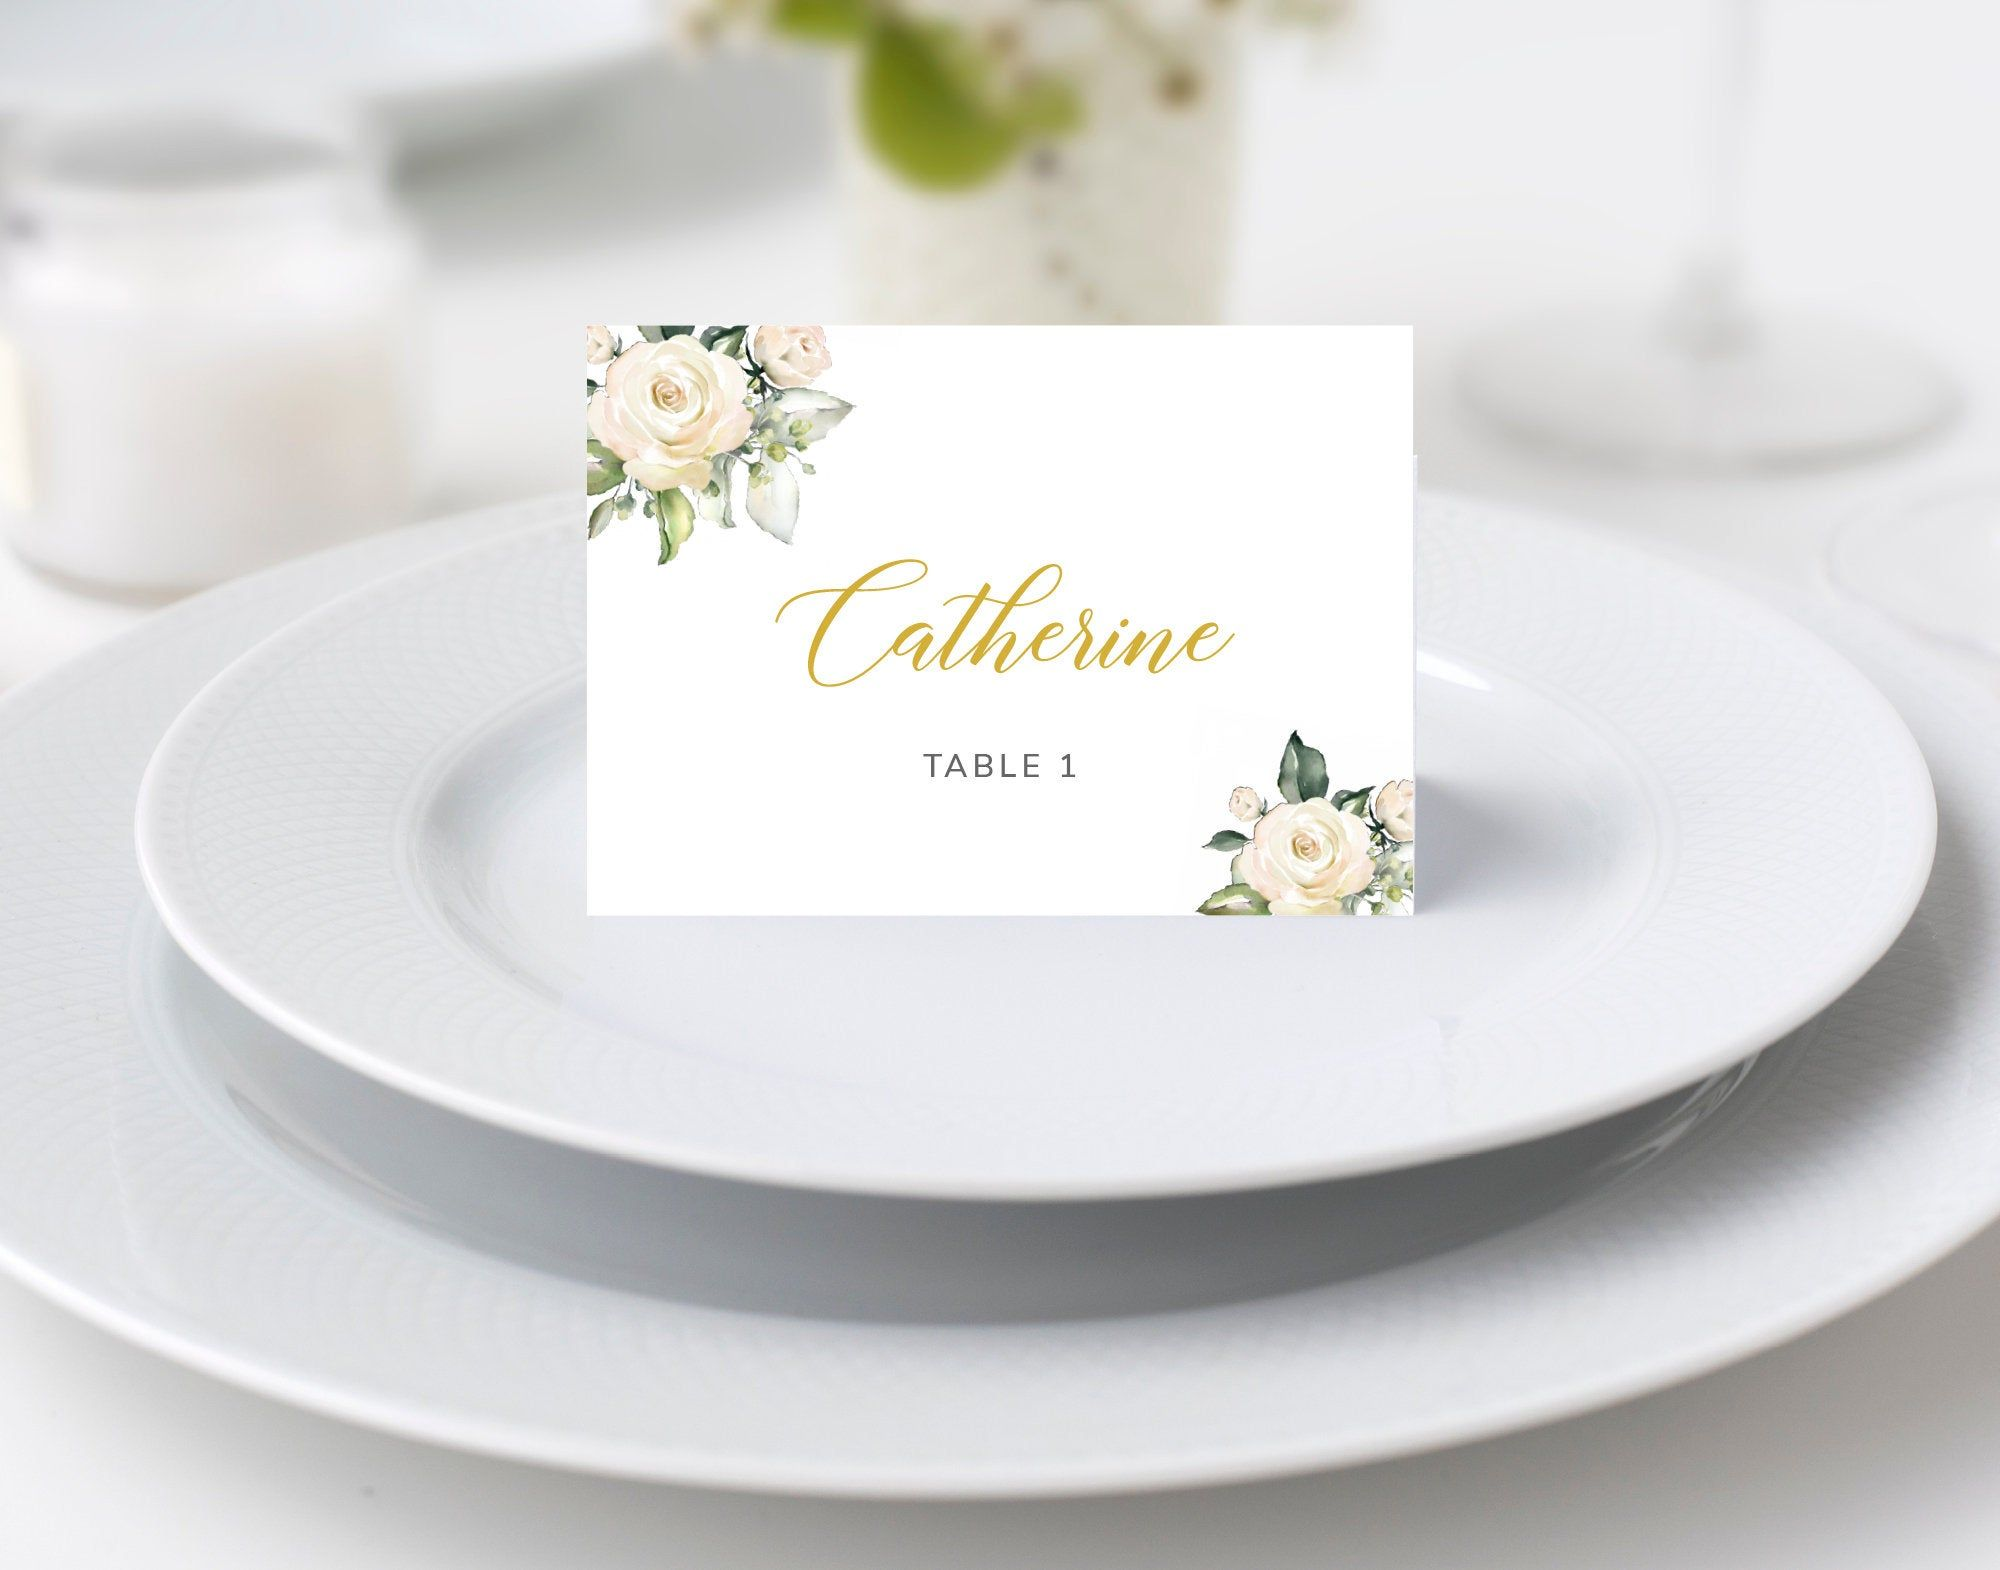 White Floral Place Cards Template Floral Tent Cards Wedding Etsy Wedding Place Cards Wedding Place Card Templates Place Card Template